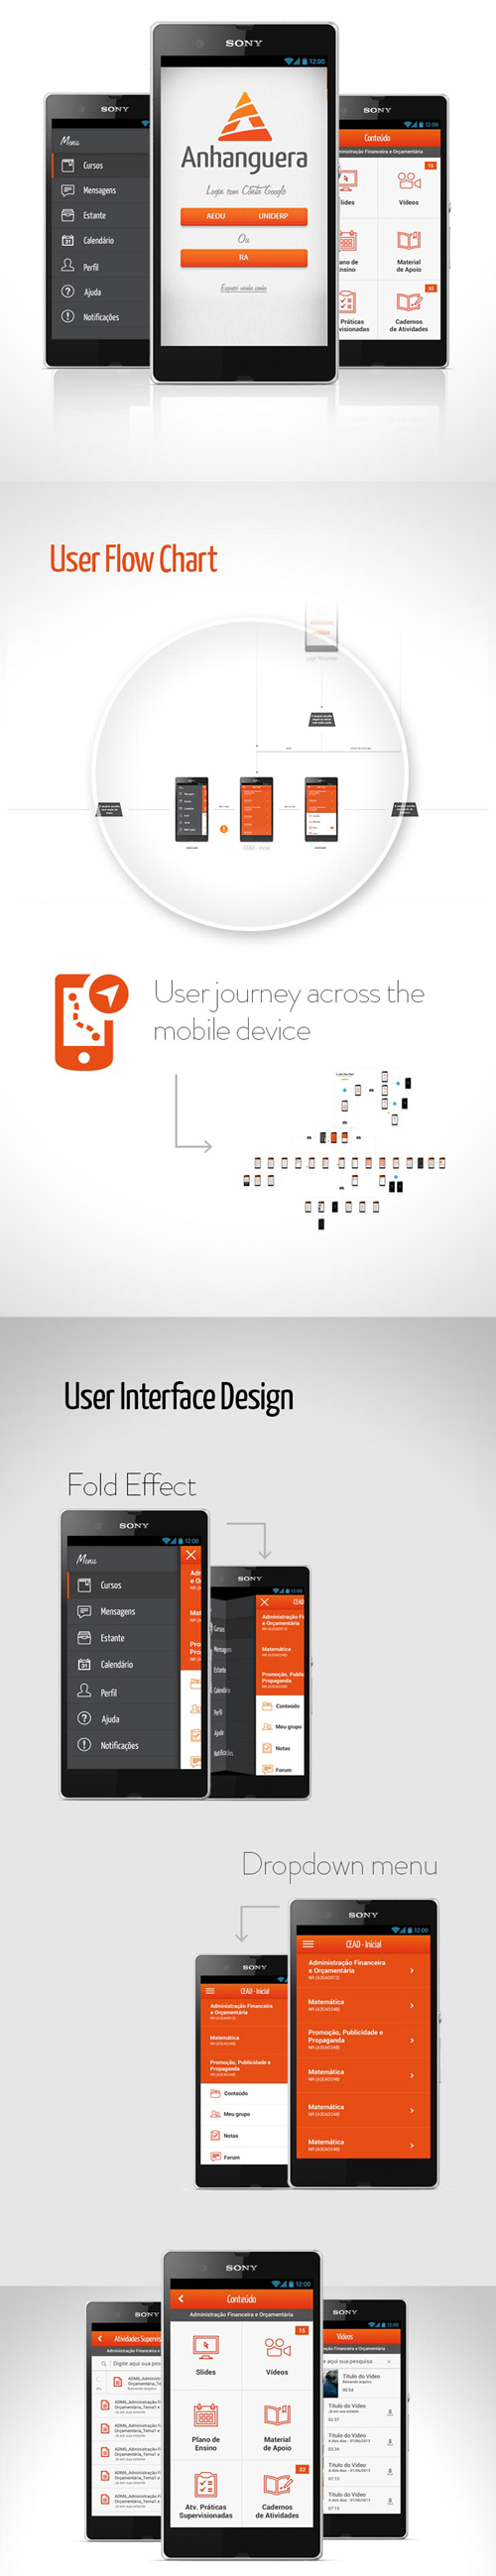 Mobile Apps Design with UI/UX-16